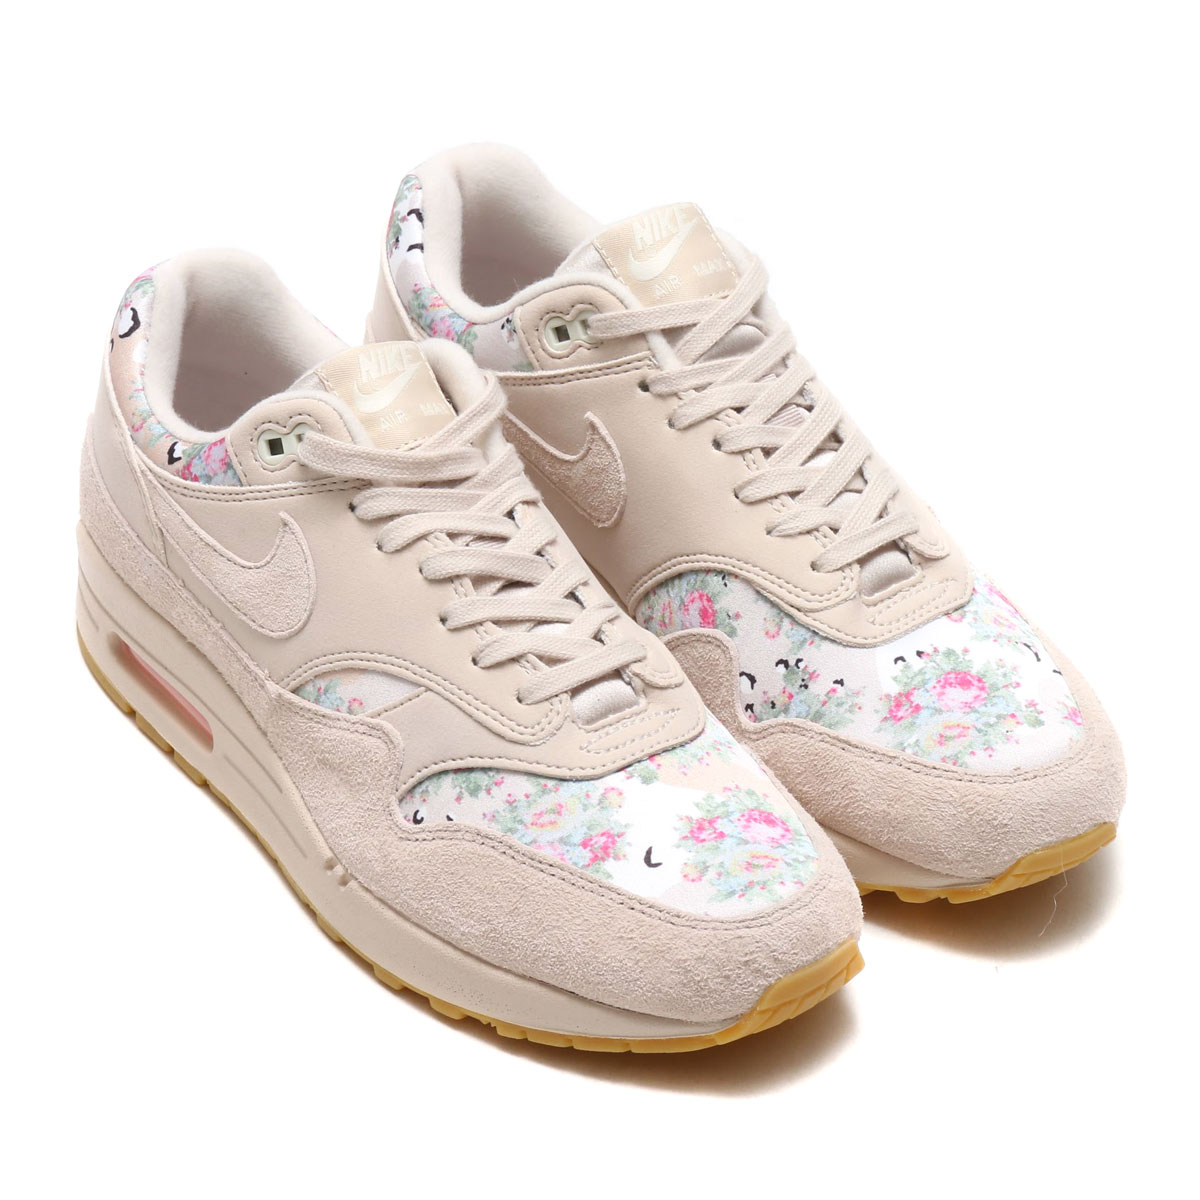 half off a2355 8e3fb NIKE WMNS AIR MAX 1 (Nike women Air Max 1) (DESERT SAND DESERT SAND-GUM  LIGHT BROWN) 18SU-S